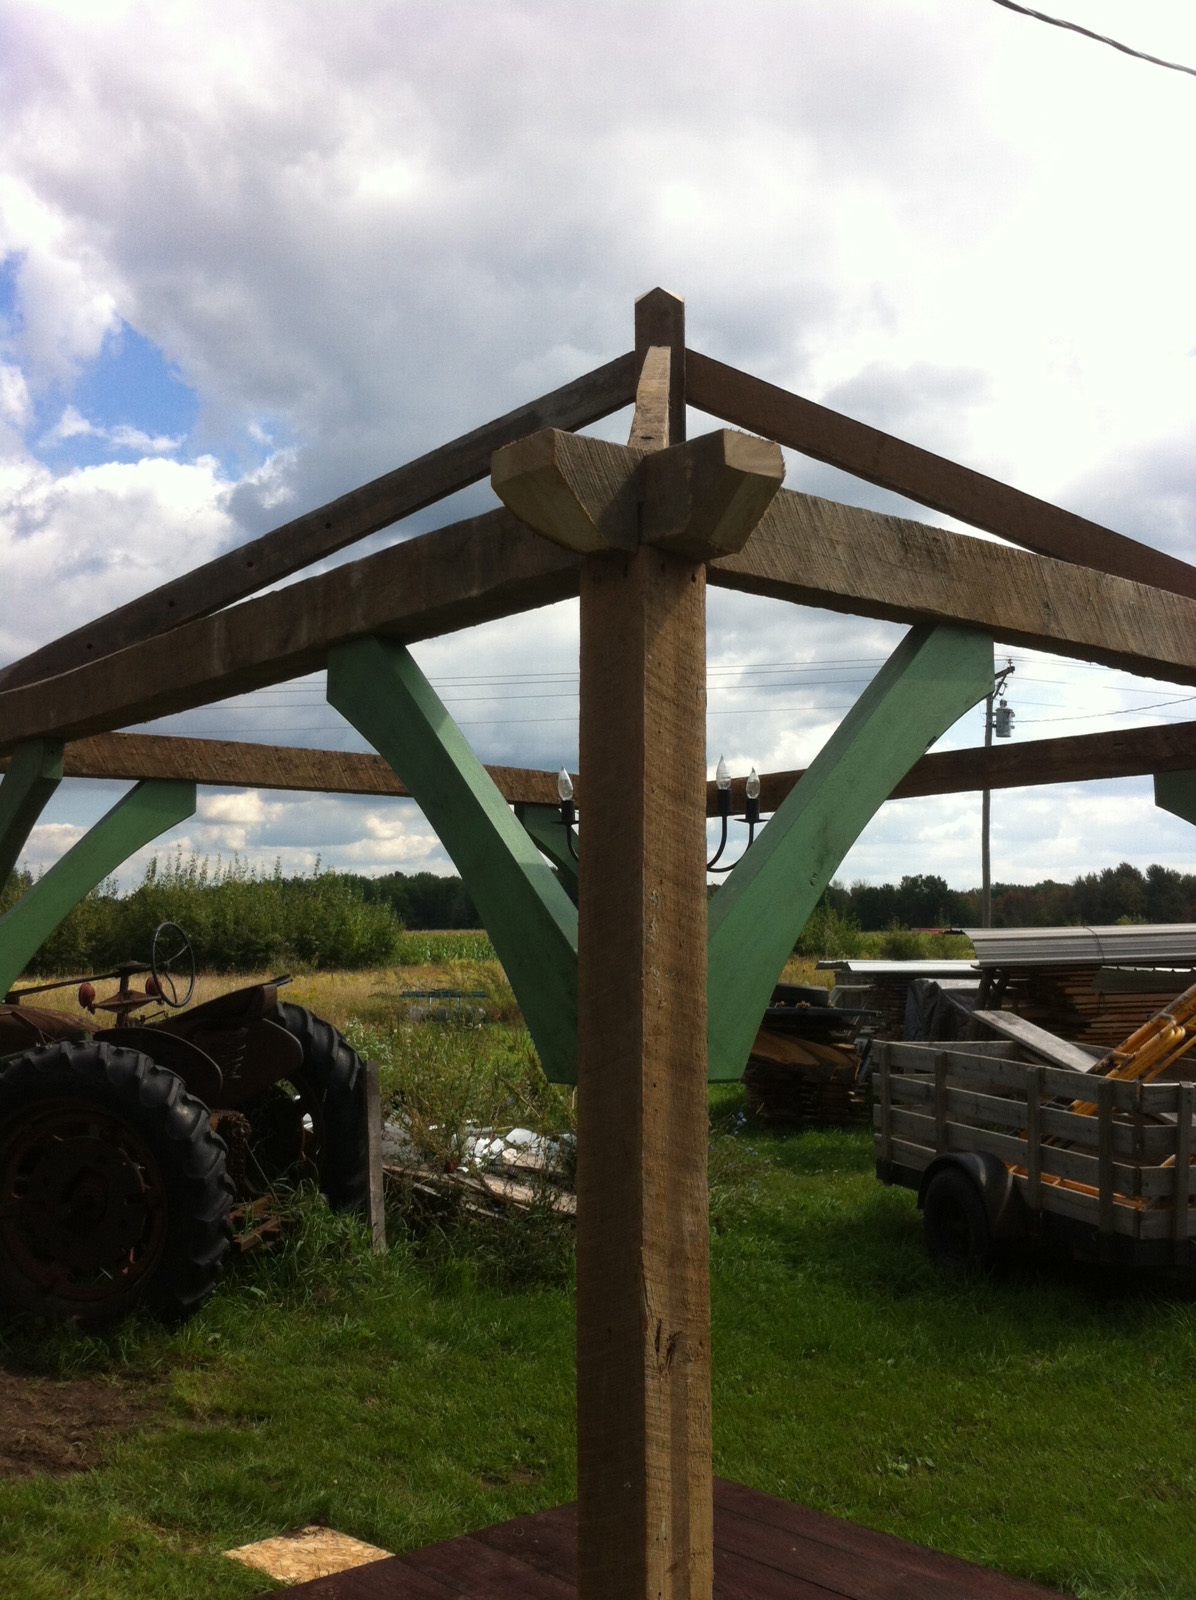 For Sale: Rustic Wedding Gazebo out of Old Barn Wood — The ...